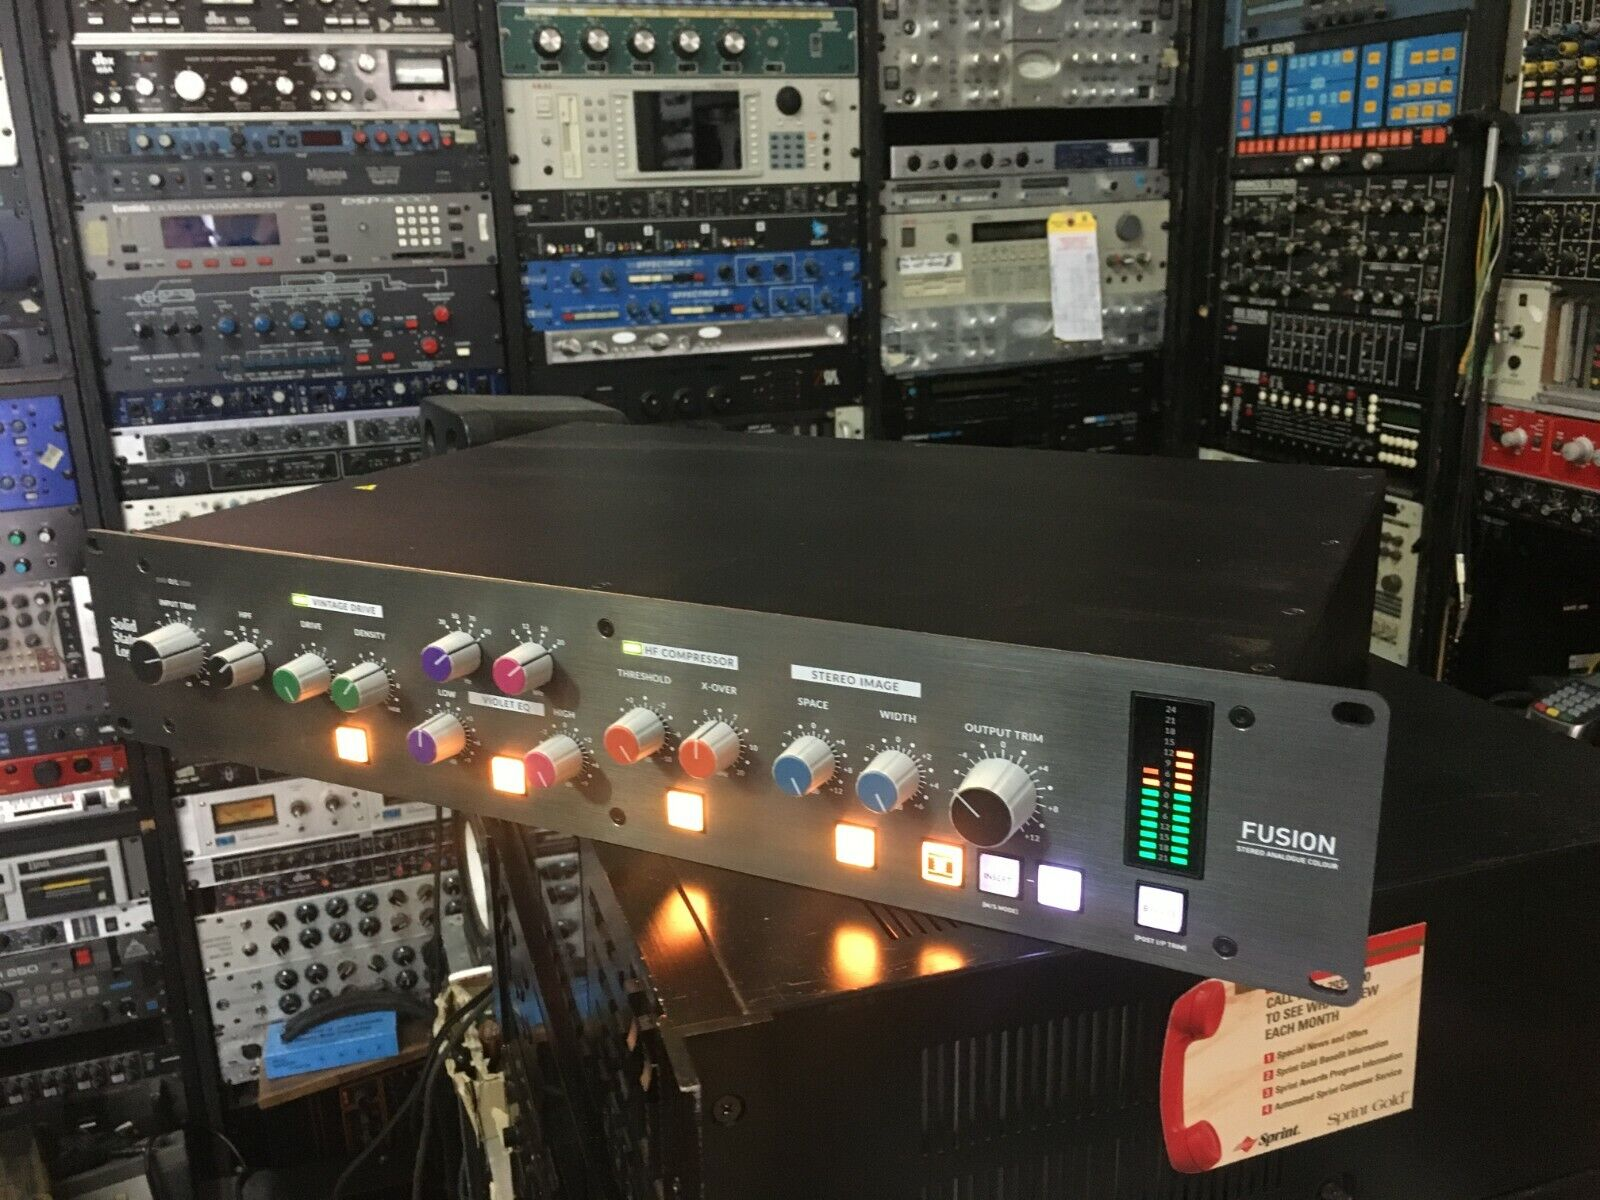 SSL FUSION Analog Master Processor  SOLID STATE LOGIC Rack MINT //ARMENS//. Available Now for 2395.00